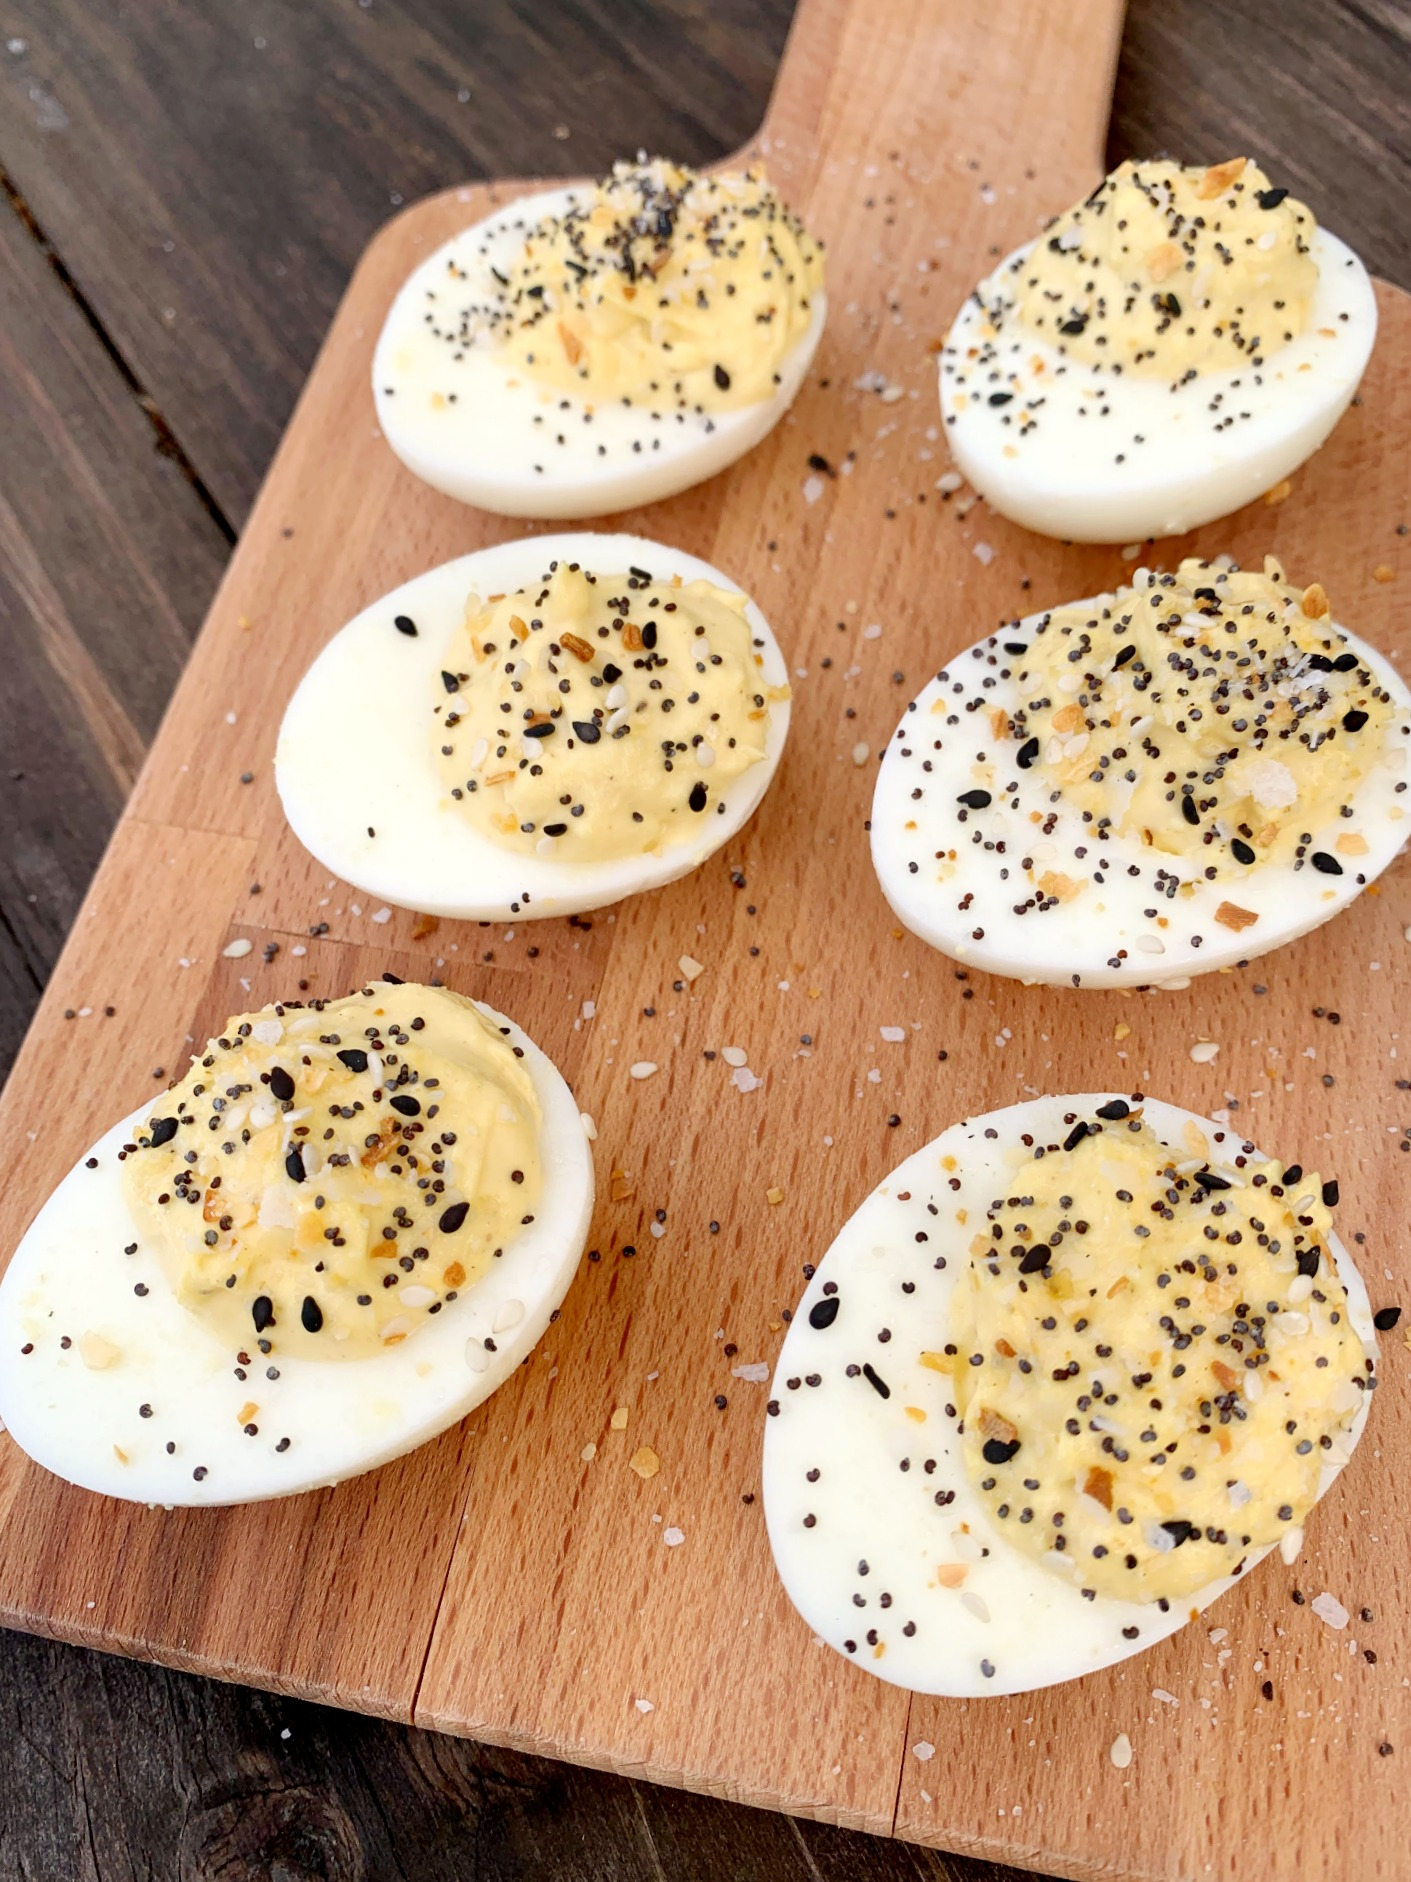 6 Everything But the Bagel Deviled Eggs on a wooden cutting board